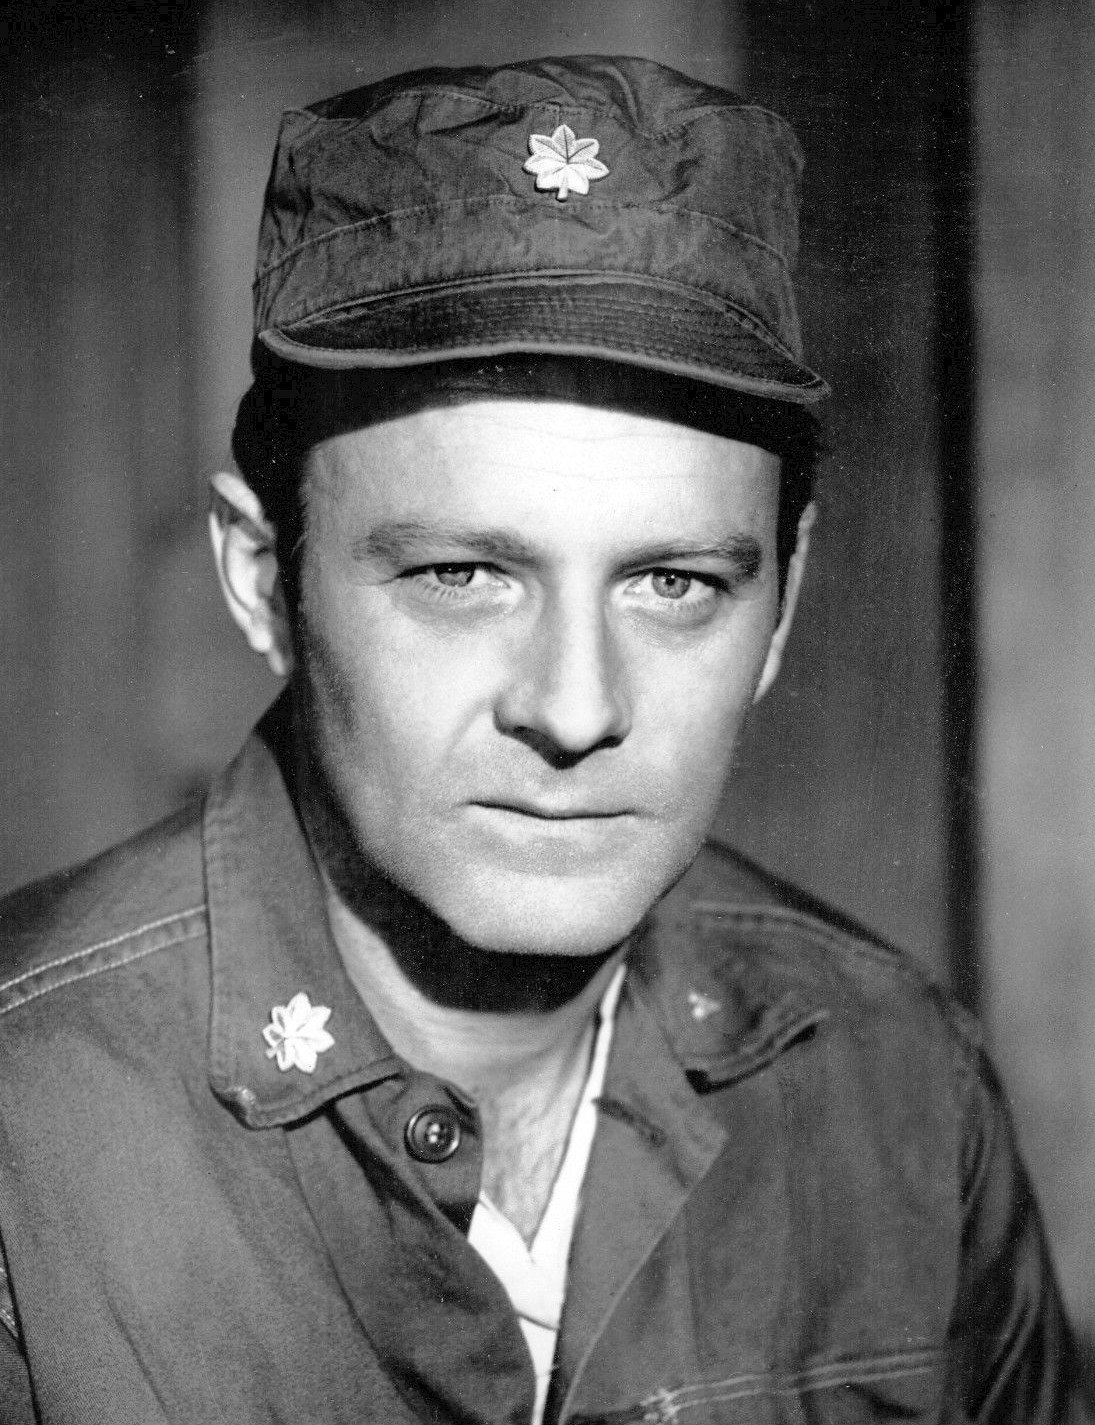 Larry Linville as Major Frank Burns from the television series M*A*S*H. | Source: Wikimedia Commons